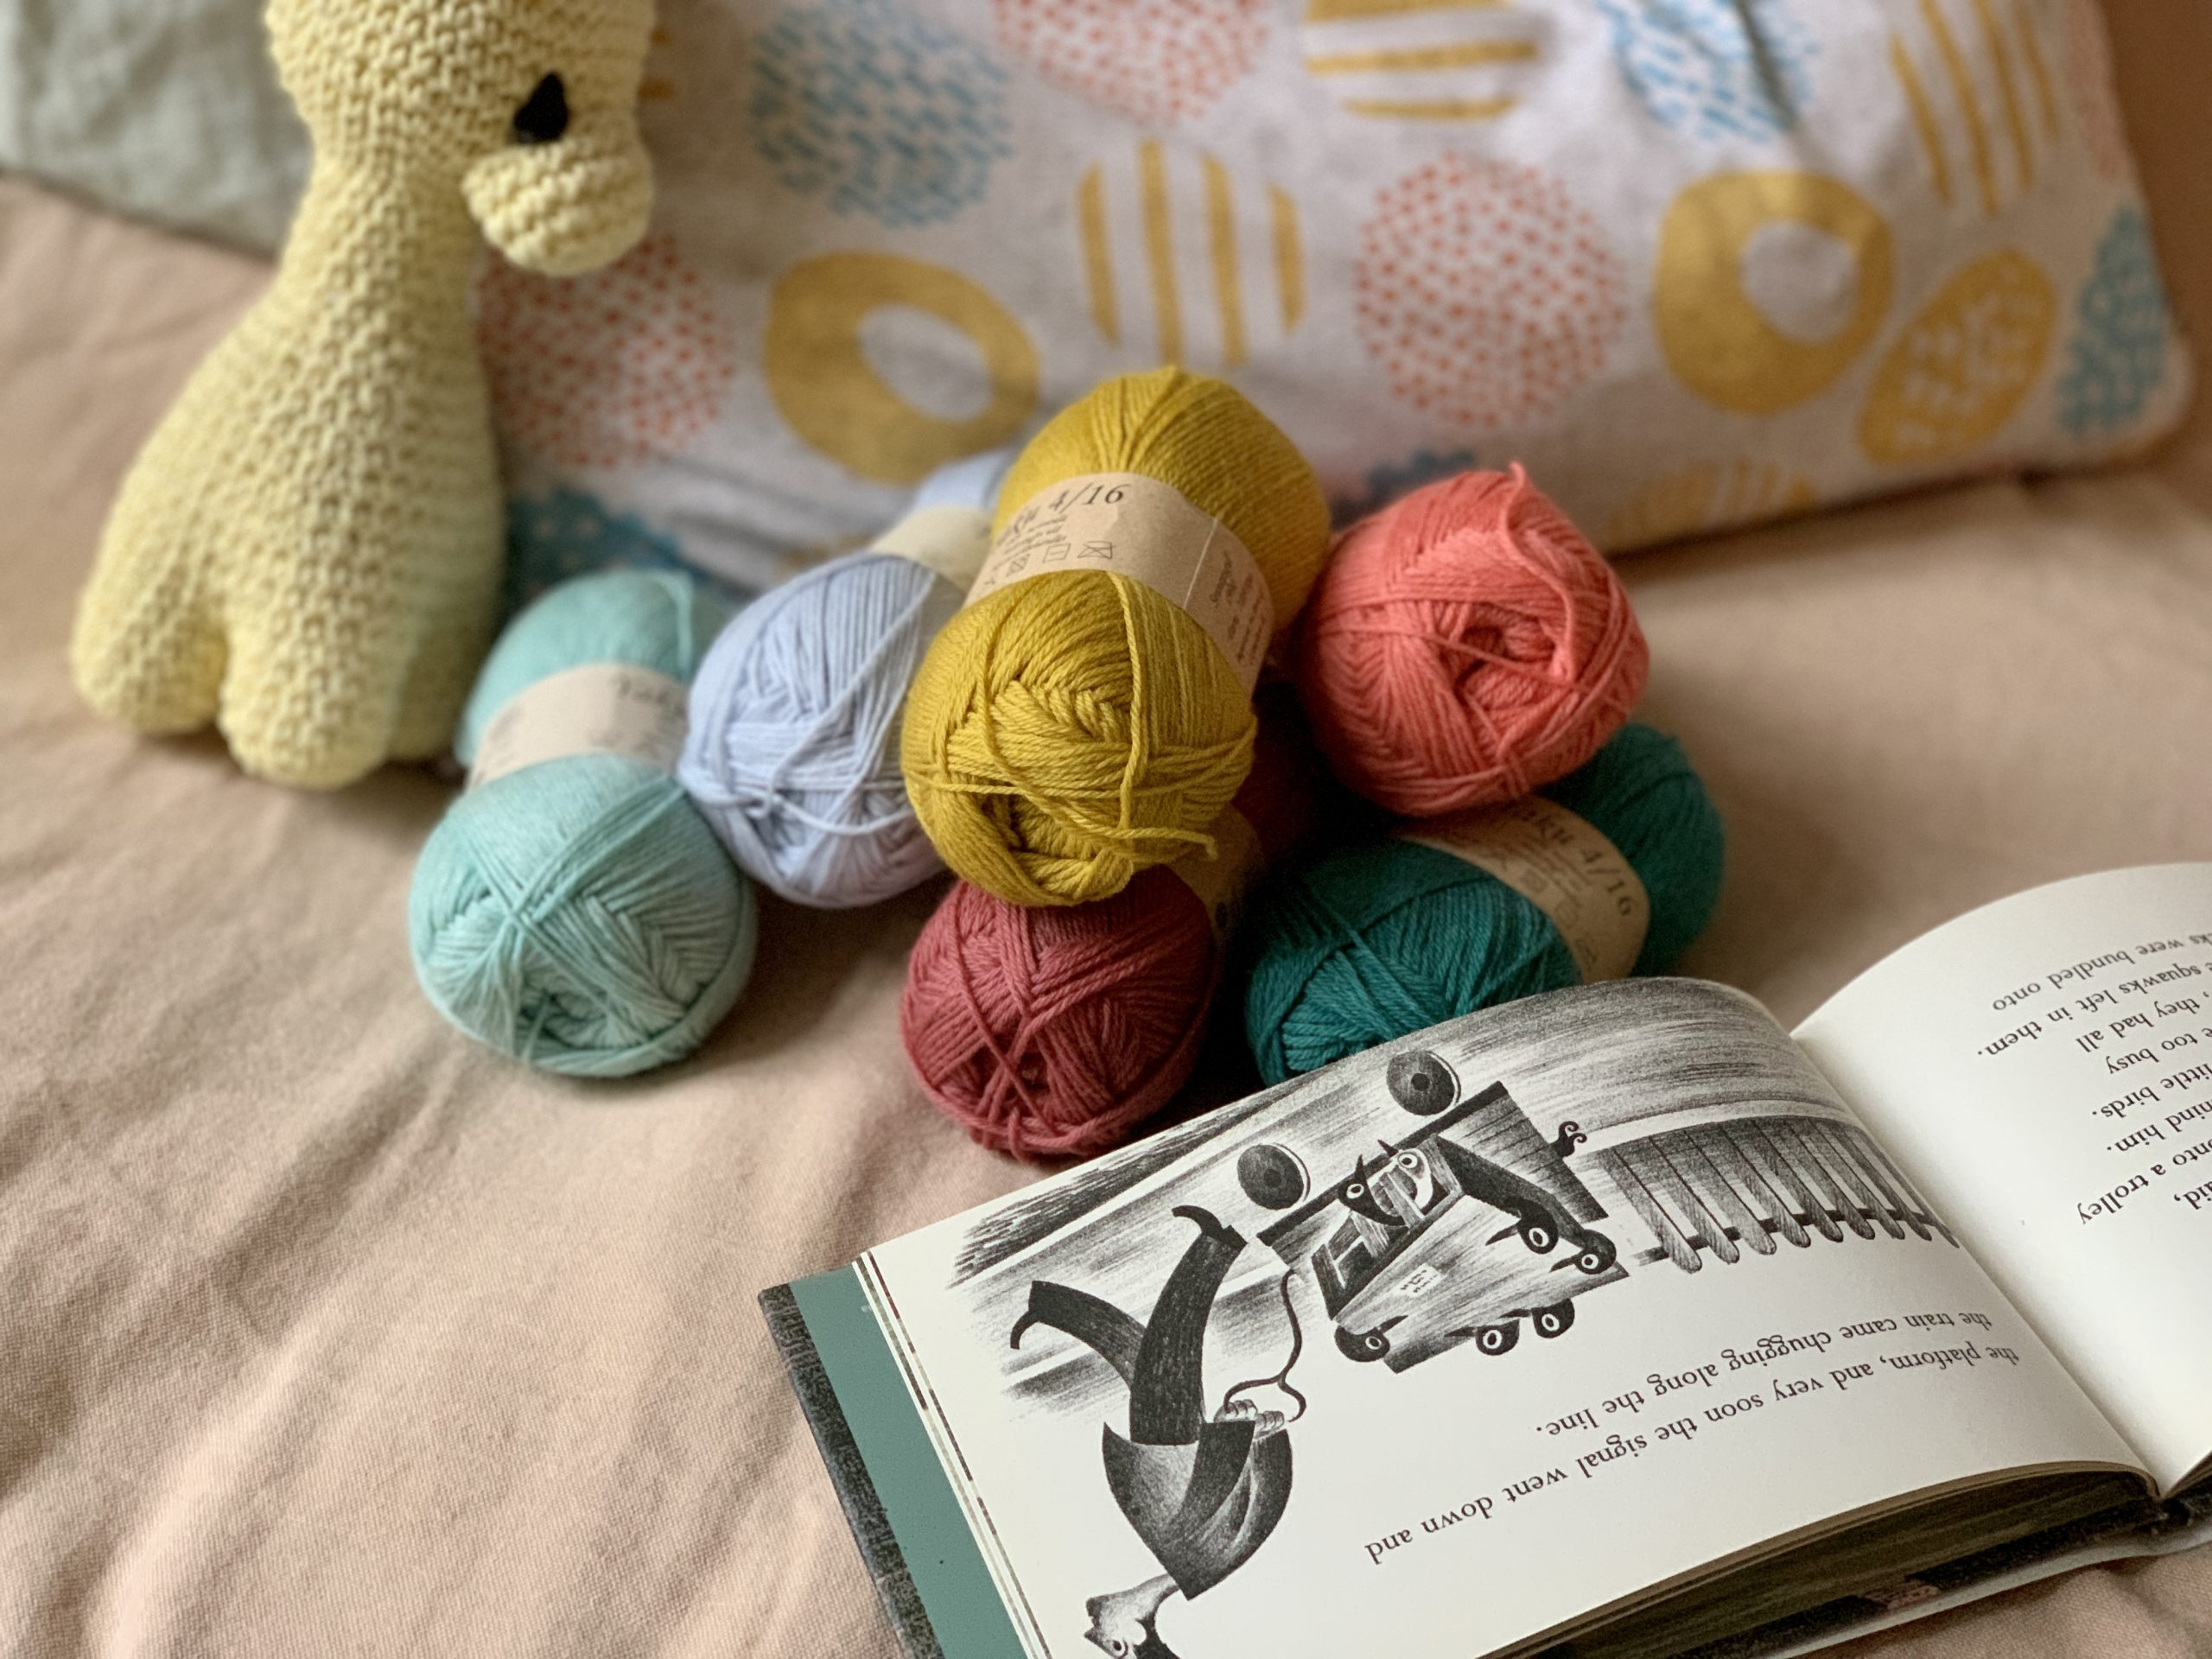 Baby yarns and cutie patterns for baby knits from PetiteKnit